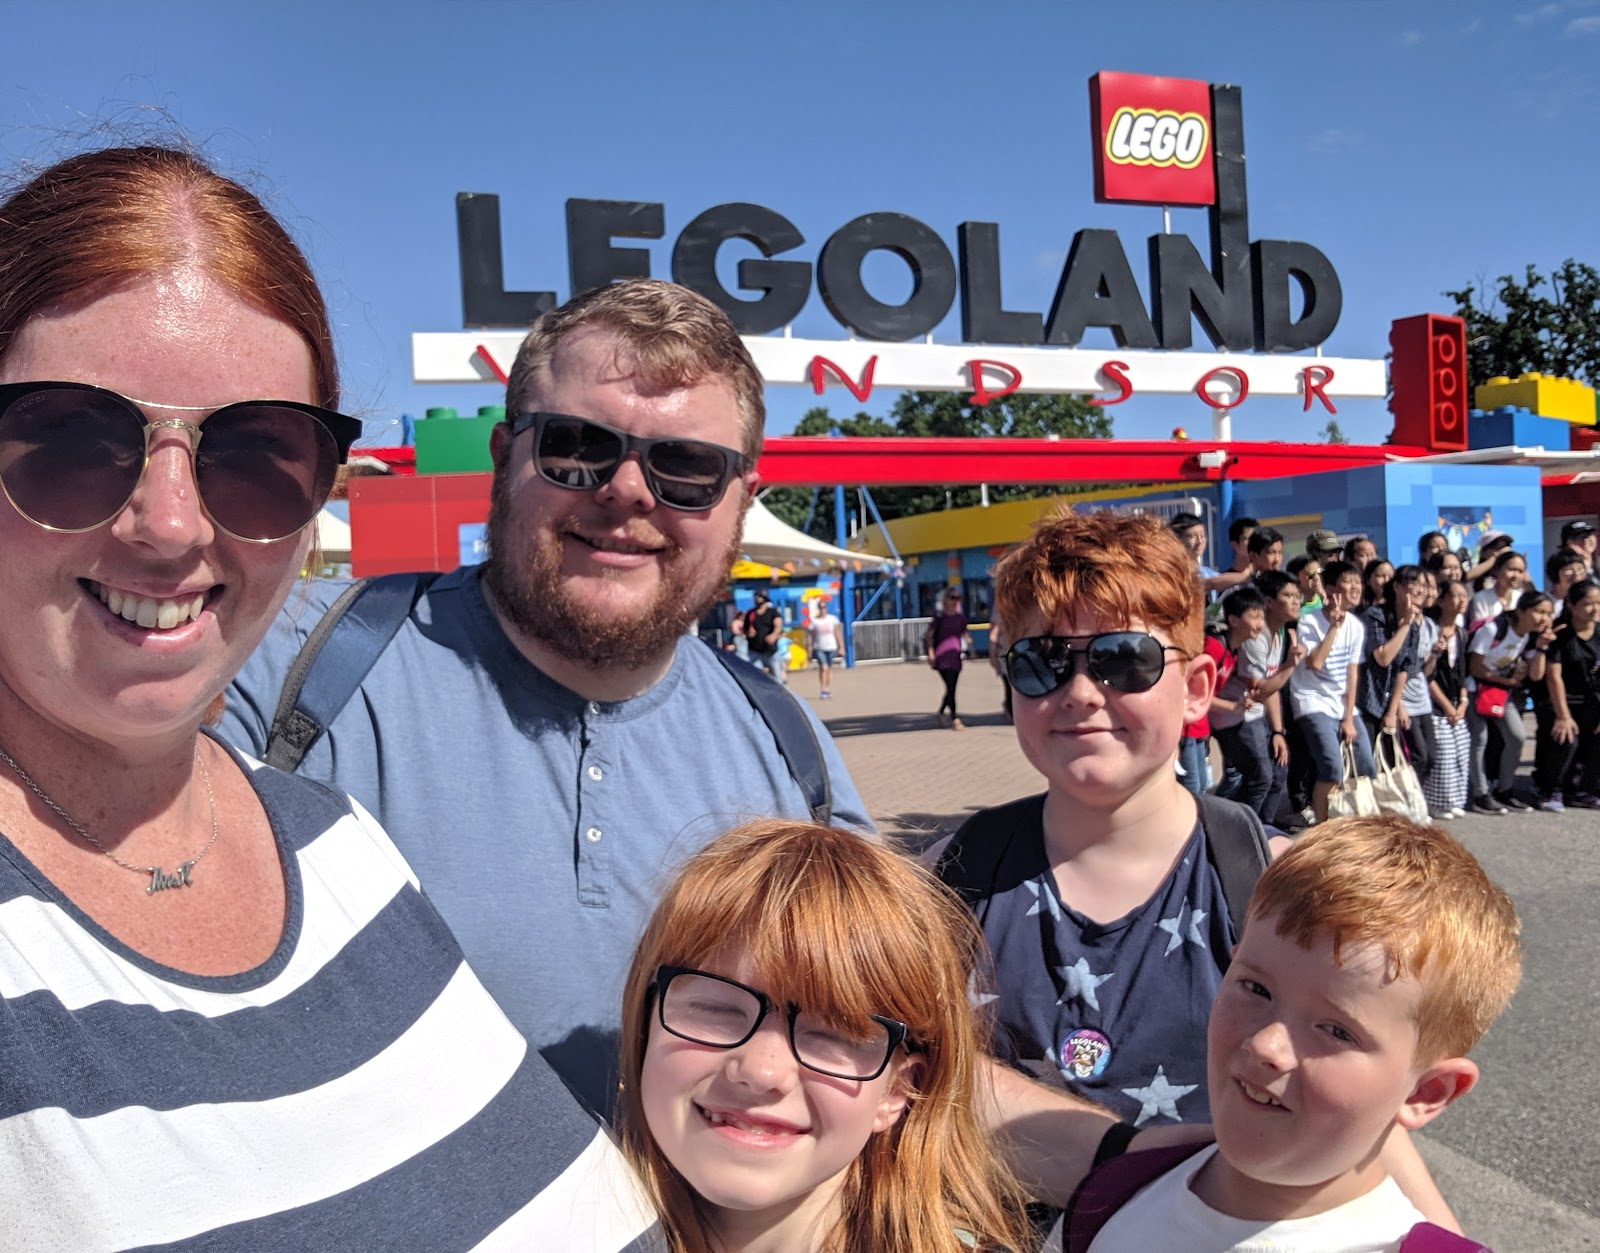 Exploring the Southern Merlin Theme Parks with Tweens  - LEGOLAND selfie